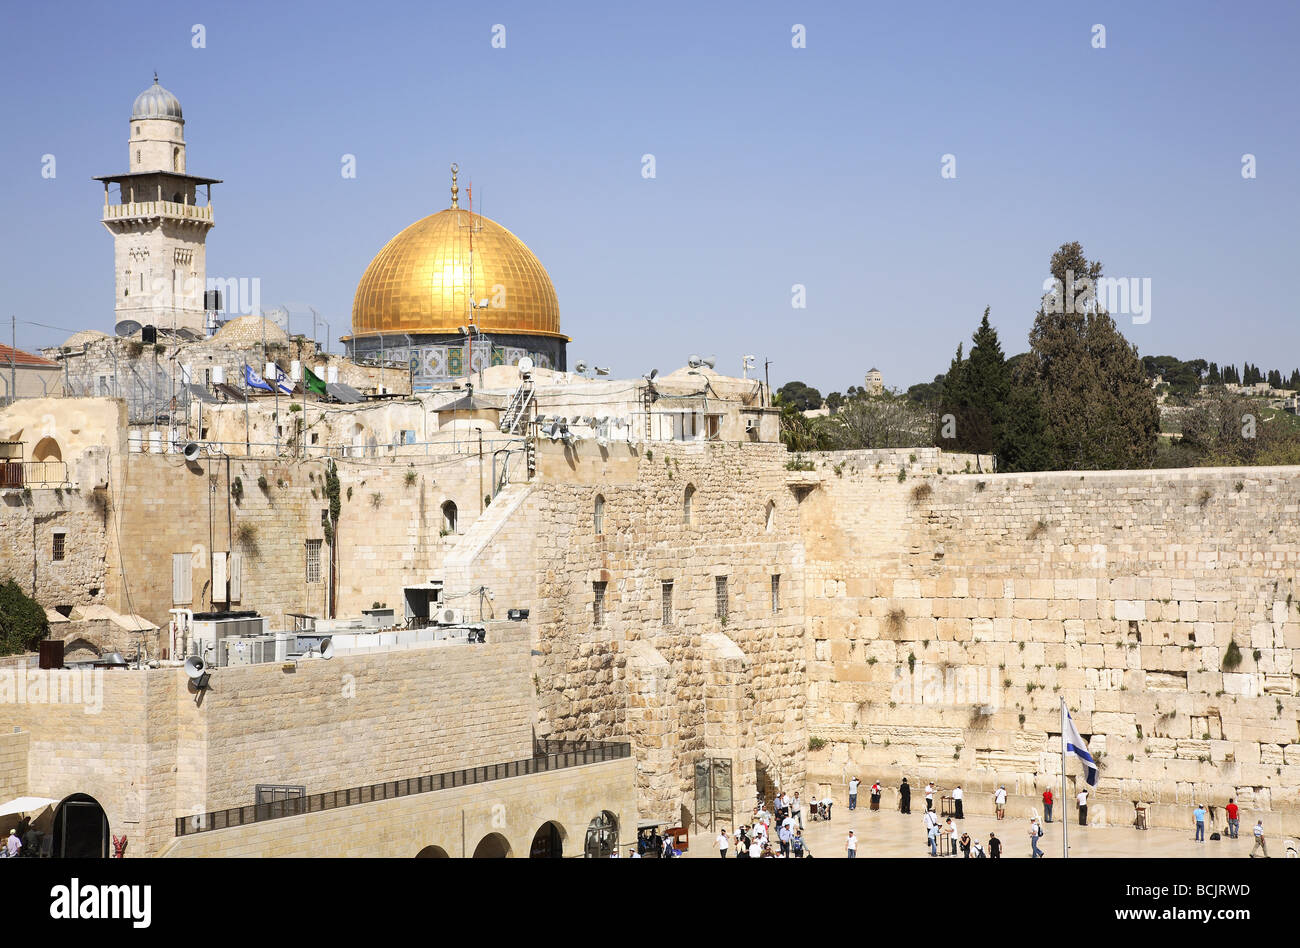 Wailing wall and dome of the rock jerusalem - Stock Image